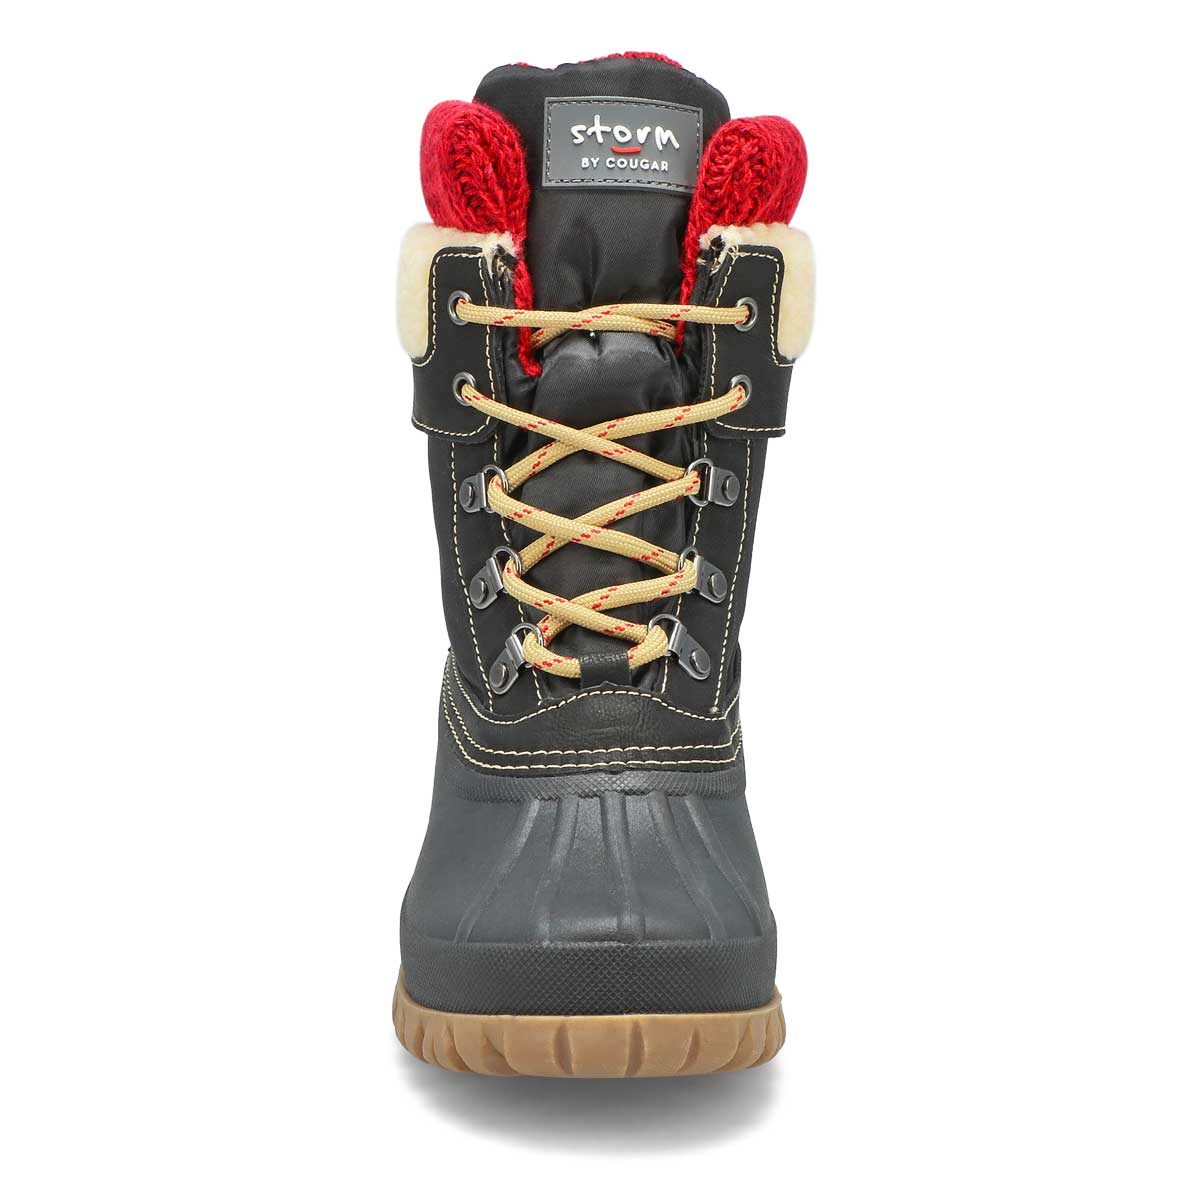 Lds Creek lace up black wtpf winter boot